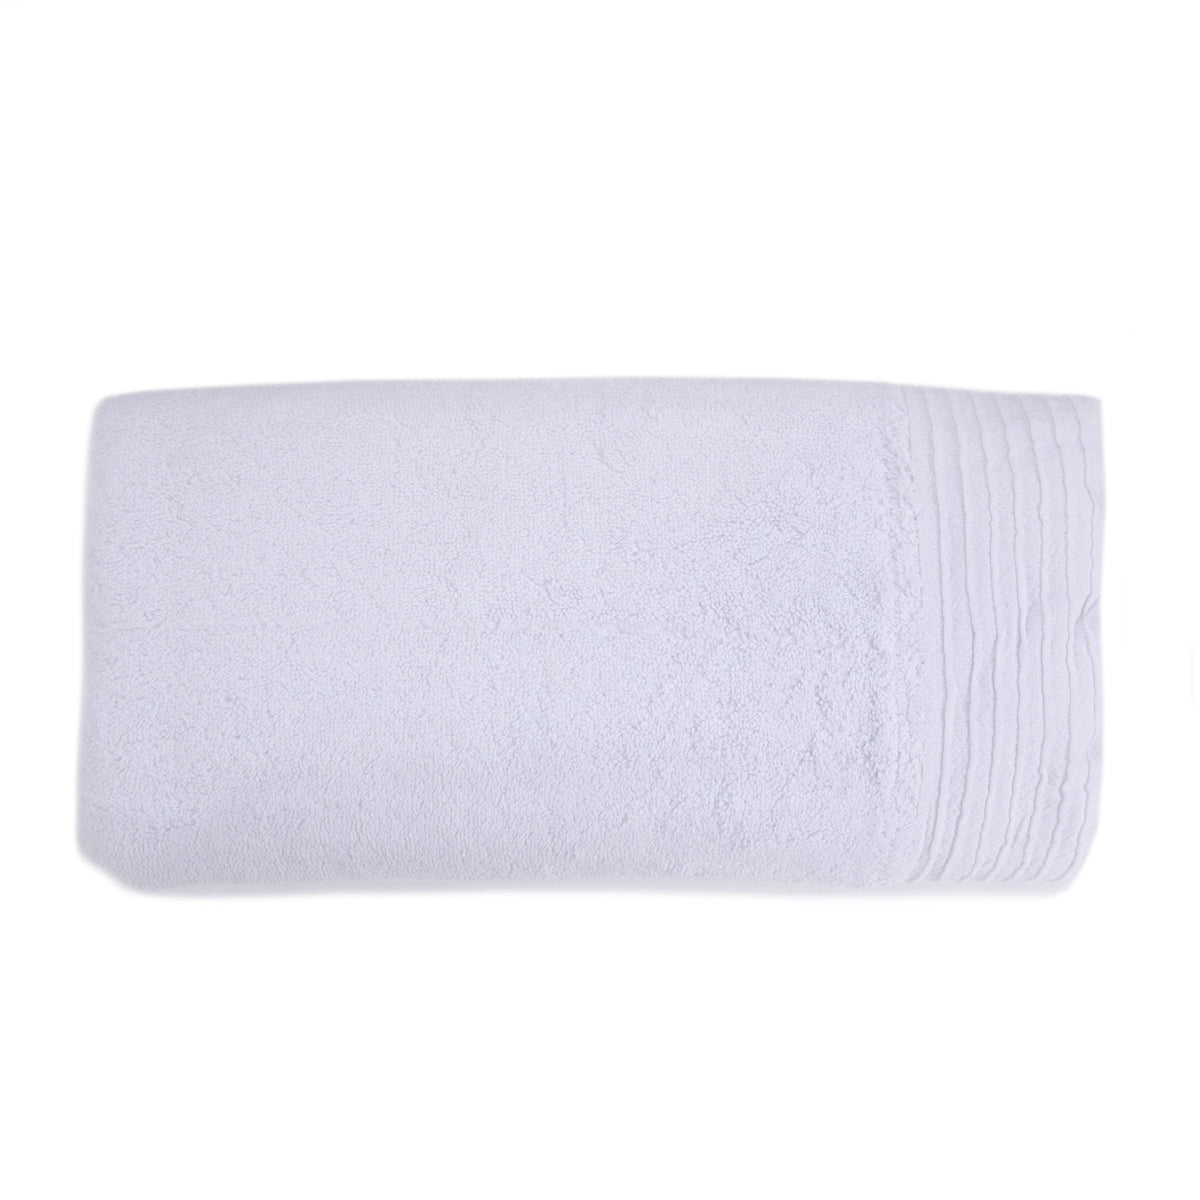 White - Towel